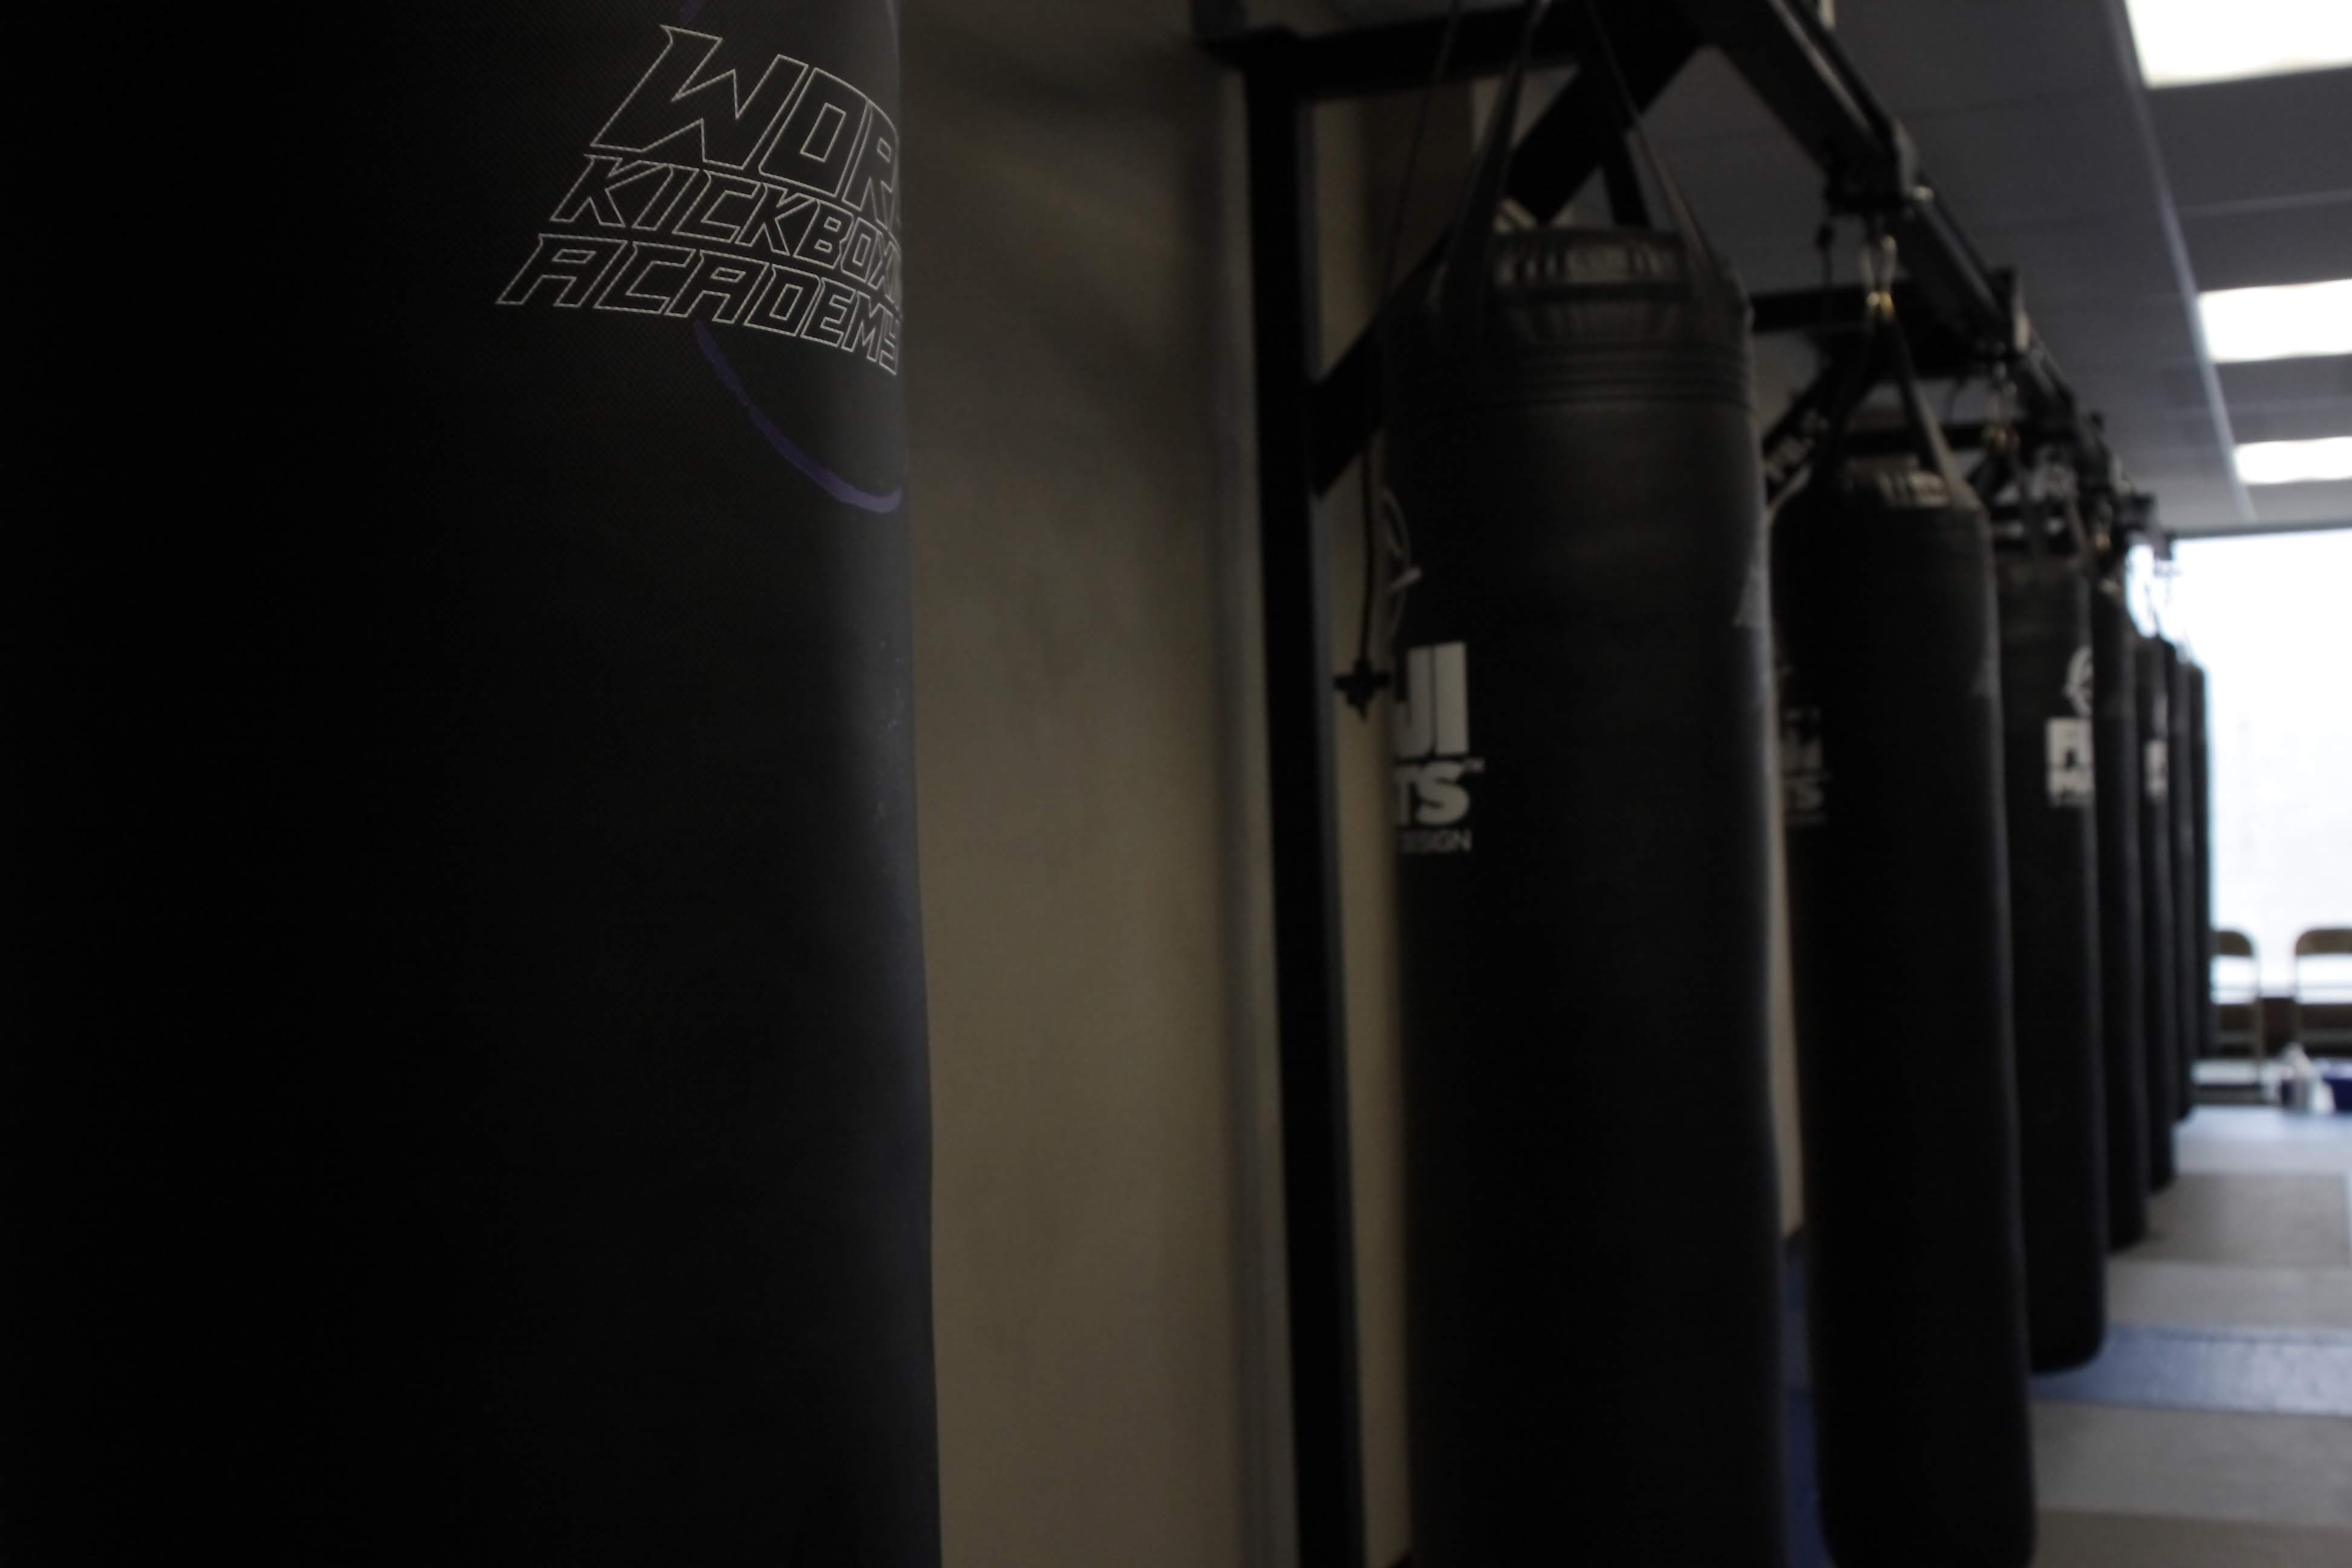 WORLD KICKBOXING ACADEMY IN CUYAHOGA FALLS